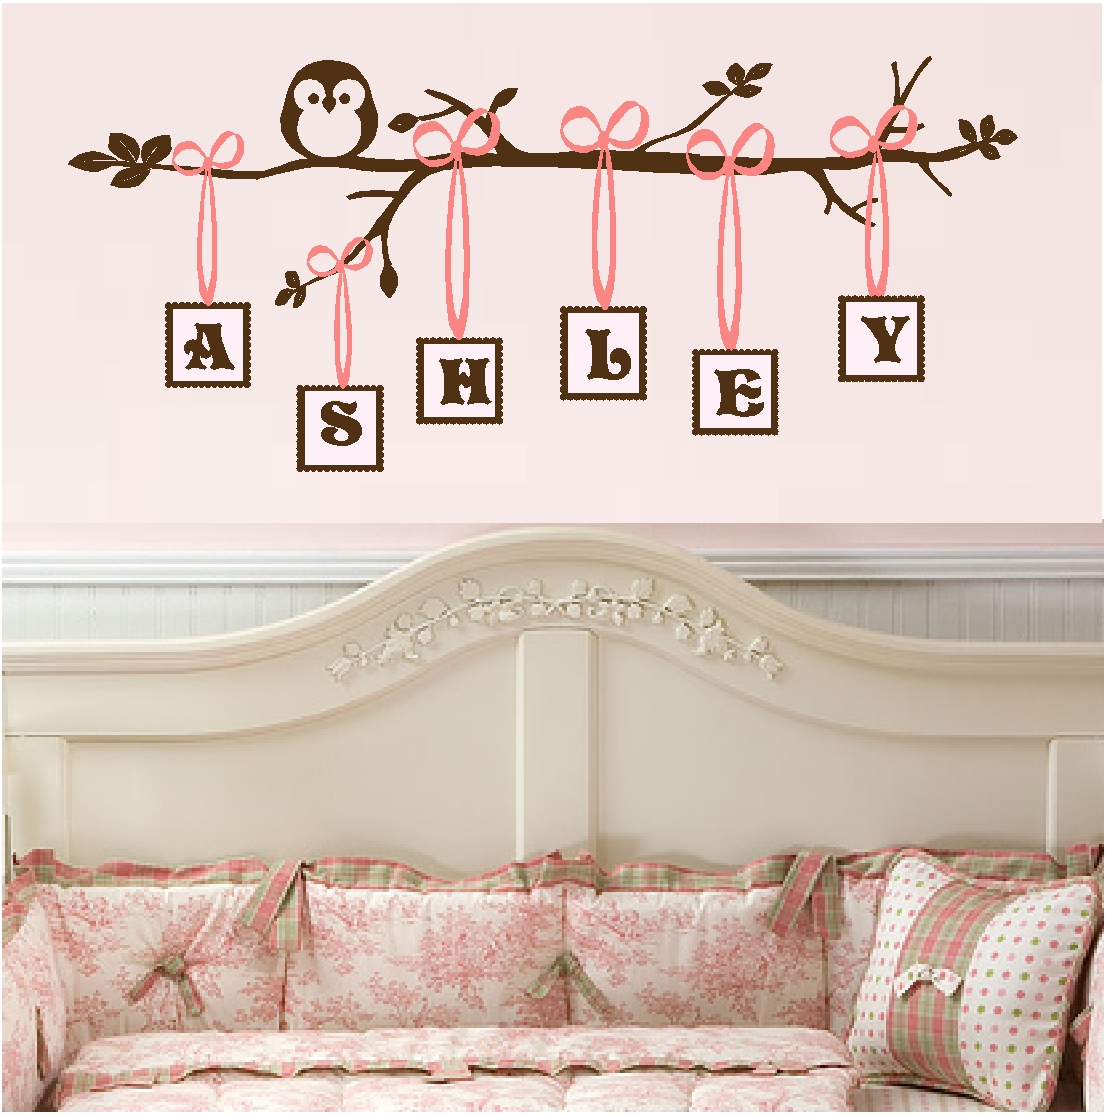 All You Need is Sleep Eyelash Family Inspirational Wall Stickers Quotes Wall Sticker Motivational Wall Decals Home Decor for Kids Baby Girls Women Nursery Living Room Bedroom Bathroom